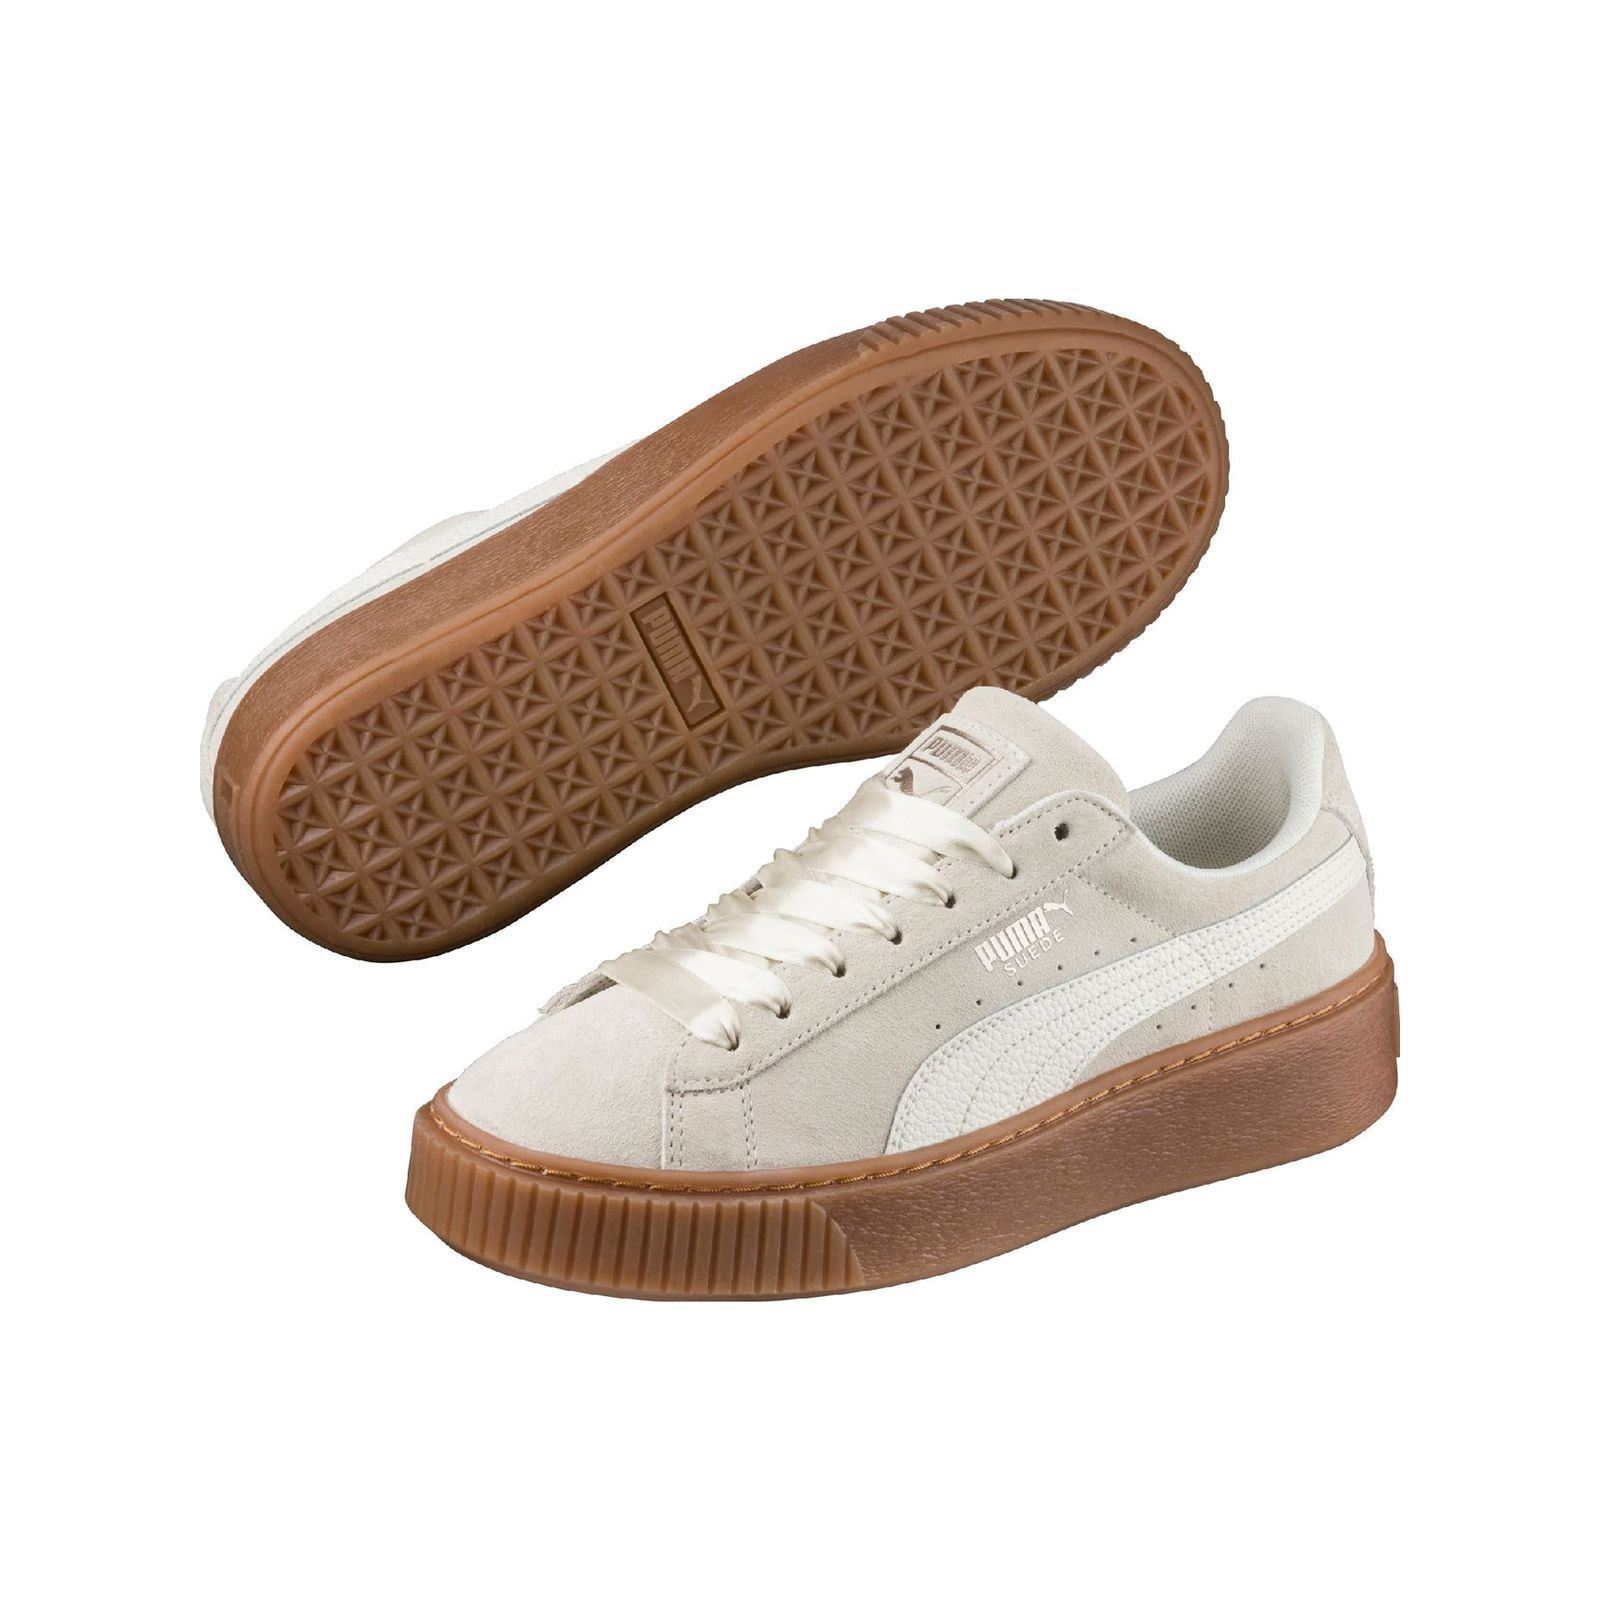 Chaussures à lacets Scarpa Cyclone Casual garçon  Sneakers Basses Homme Chaussures à lacets Scarpa Cyclone Casual garçon  40 EU K-Swiss Lozan III TT Woven L57YD5